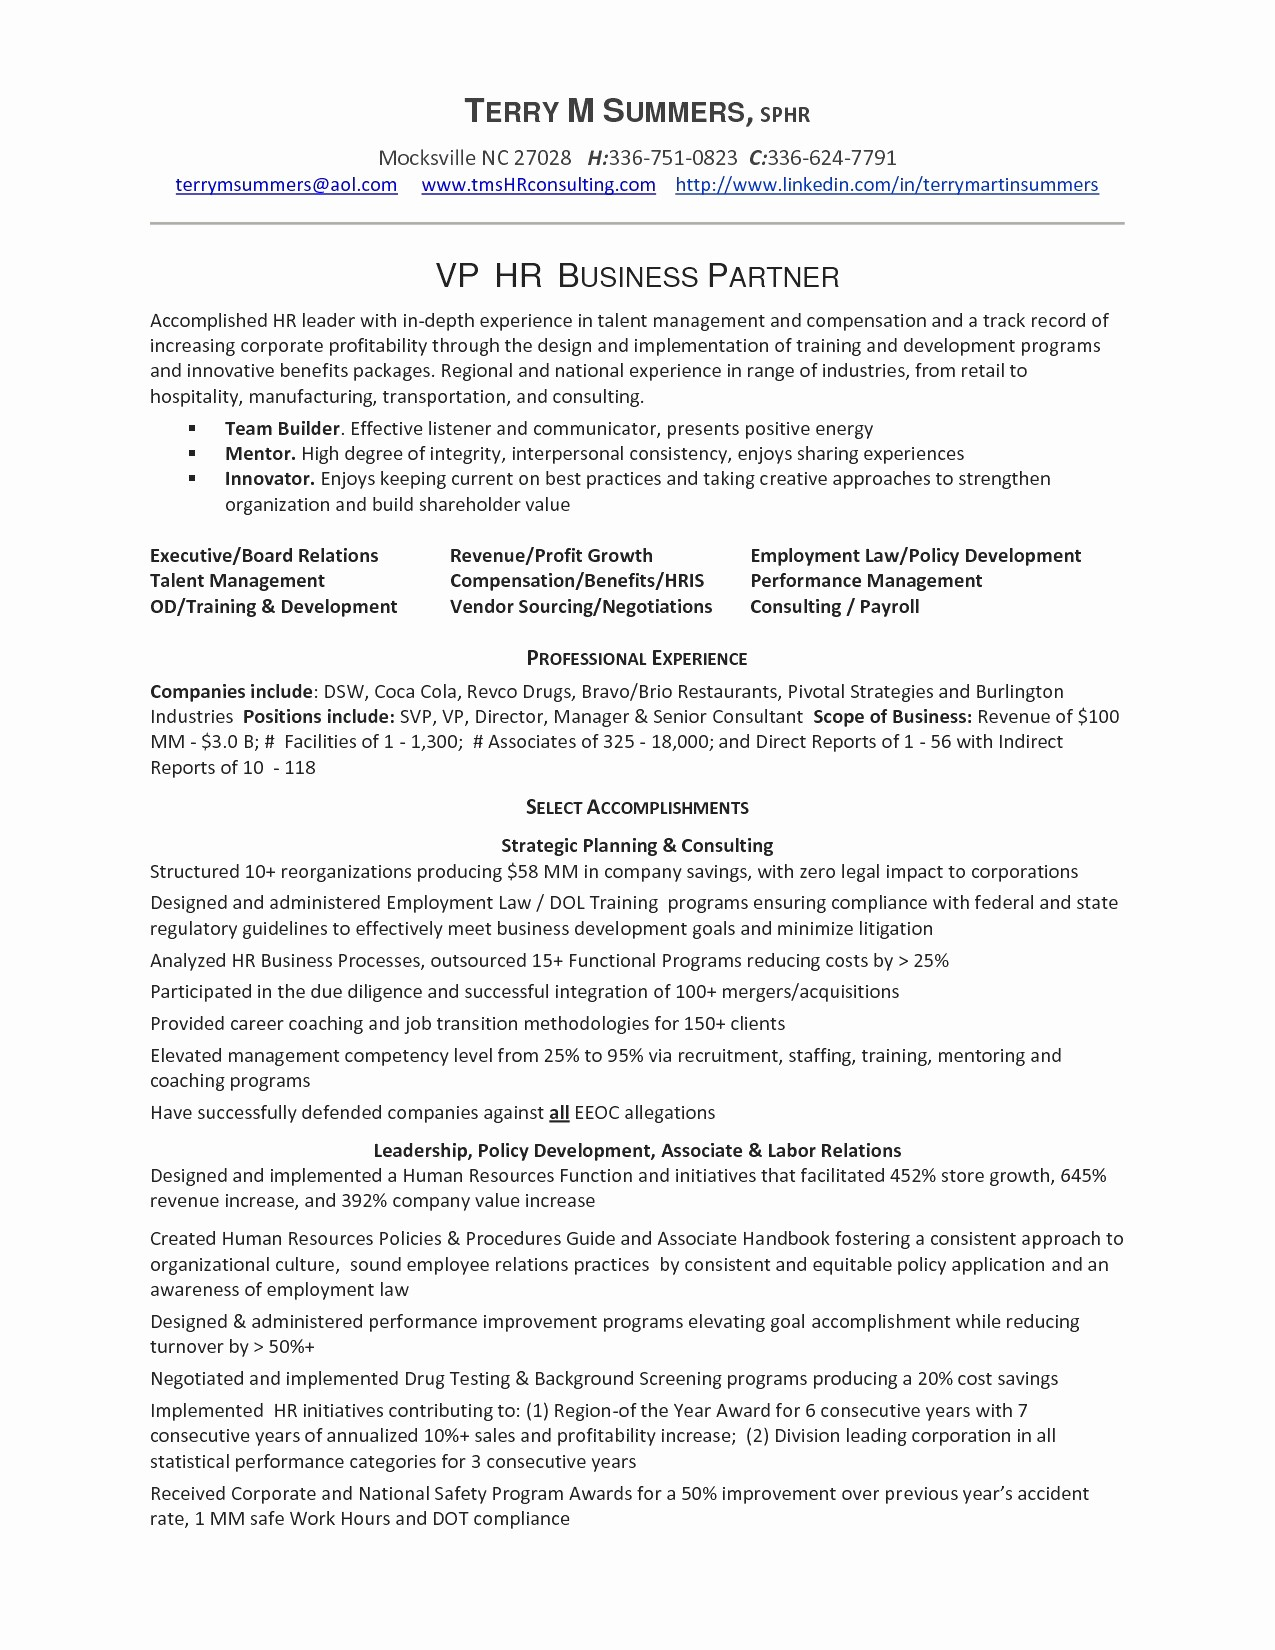 computer science internship resume example-puter Science Internship Resume 17-k